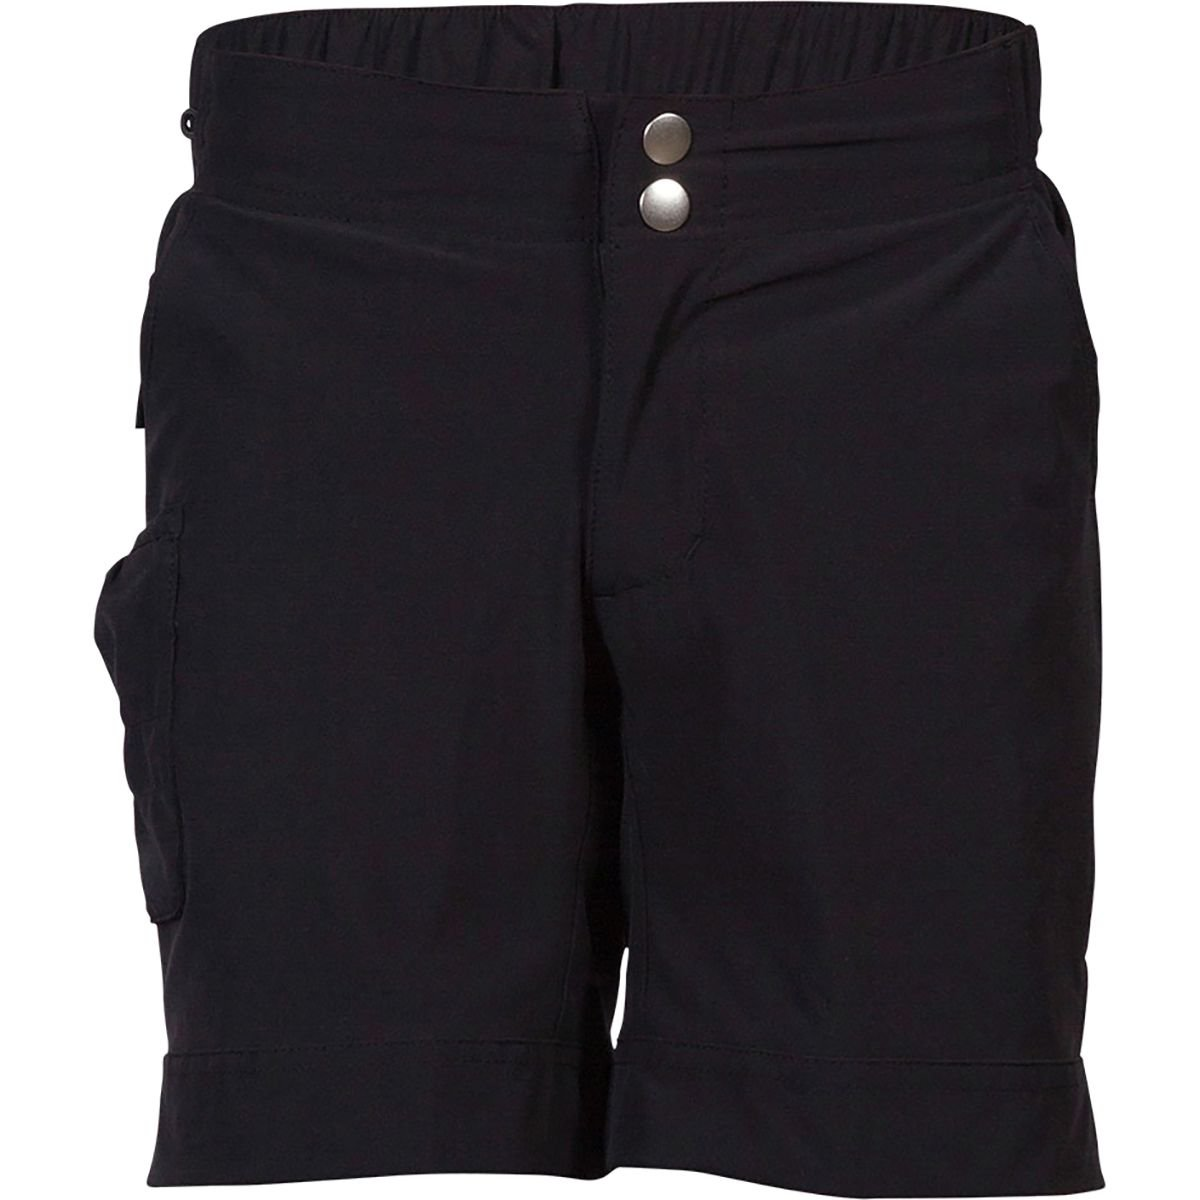 Zoic Girl's Rippette Bike Shorts, Black, X-Large by Zoic